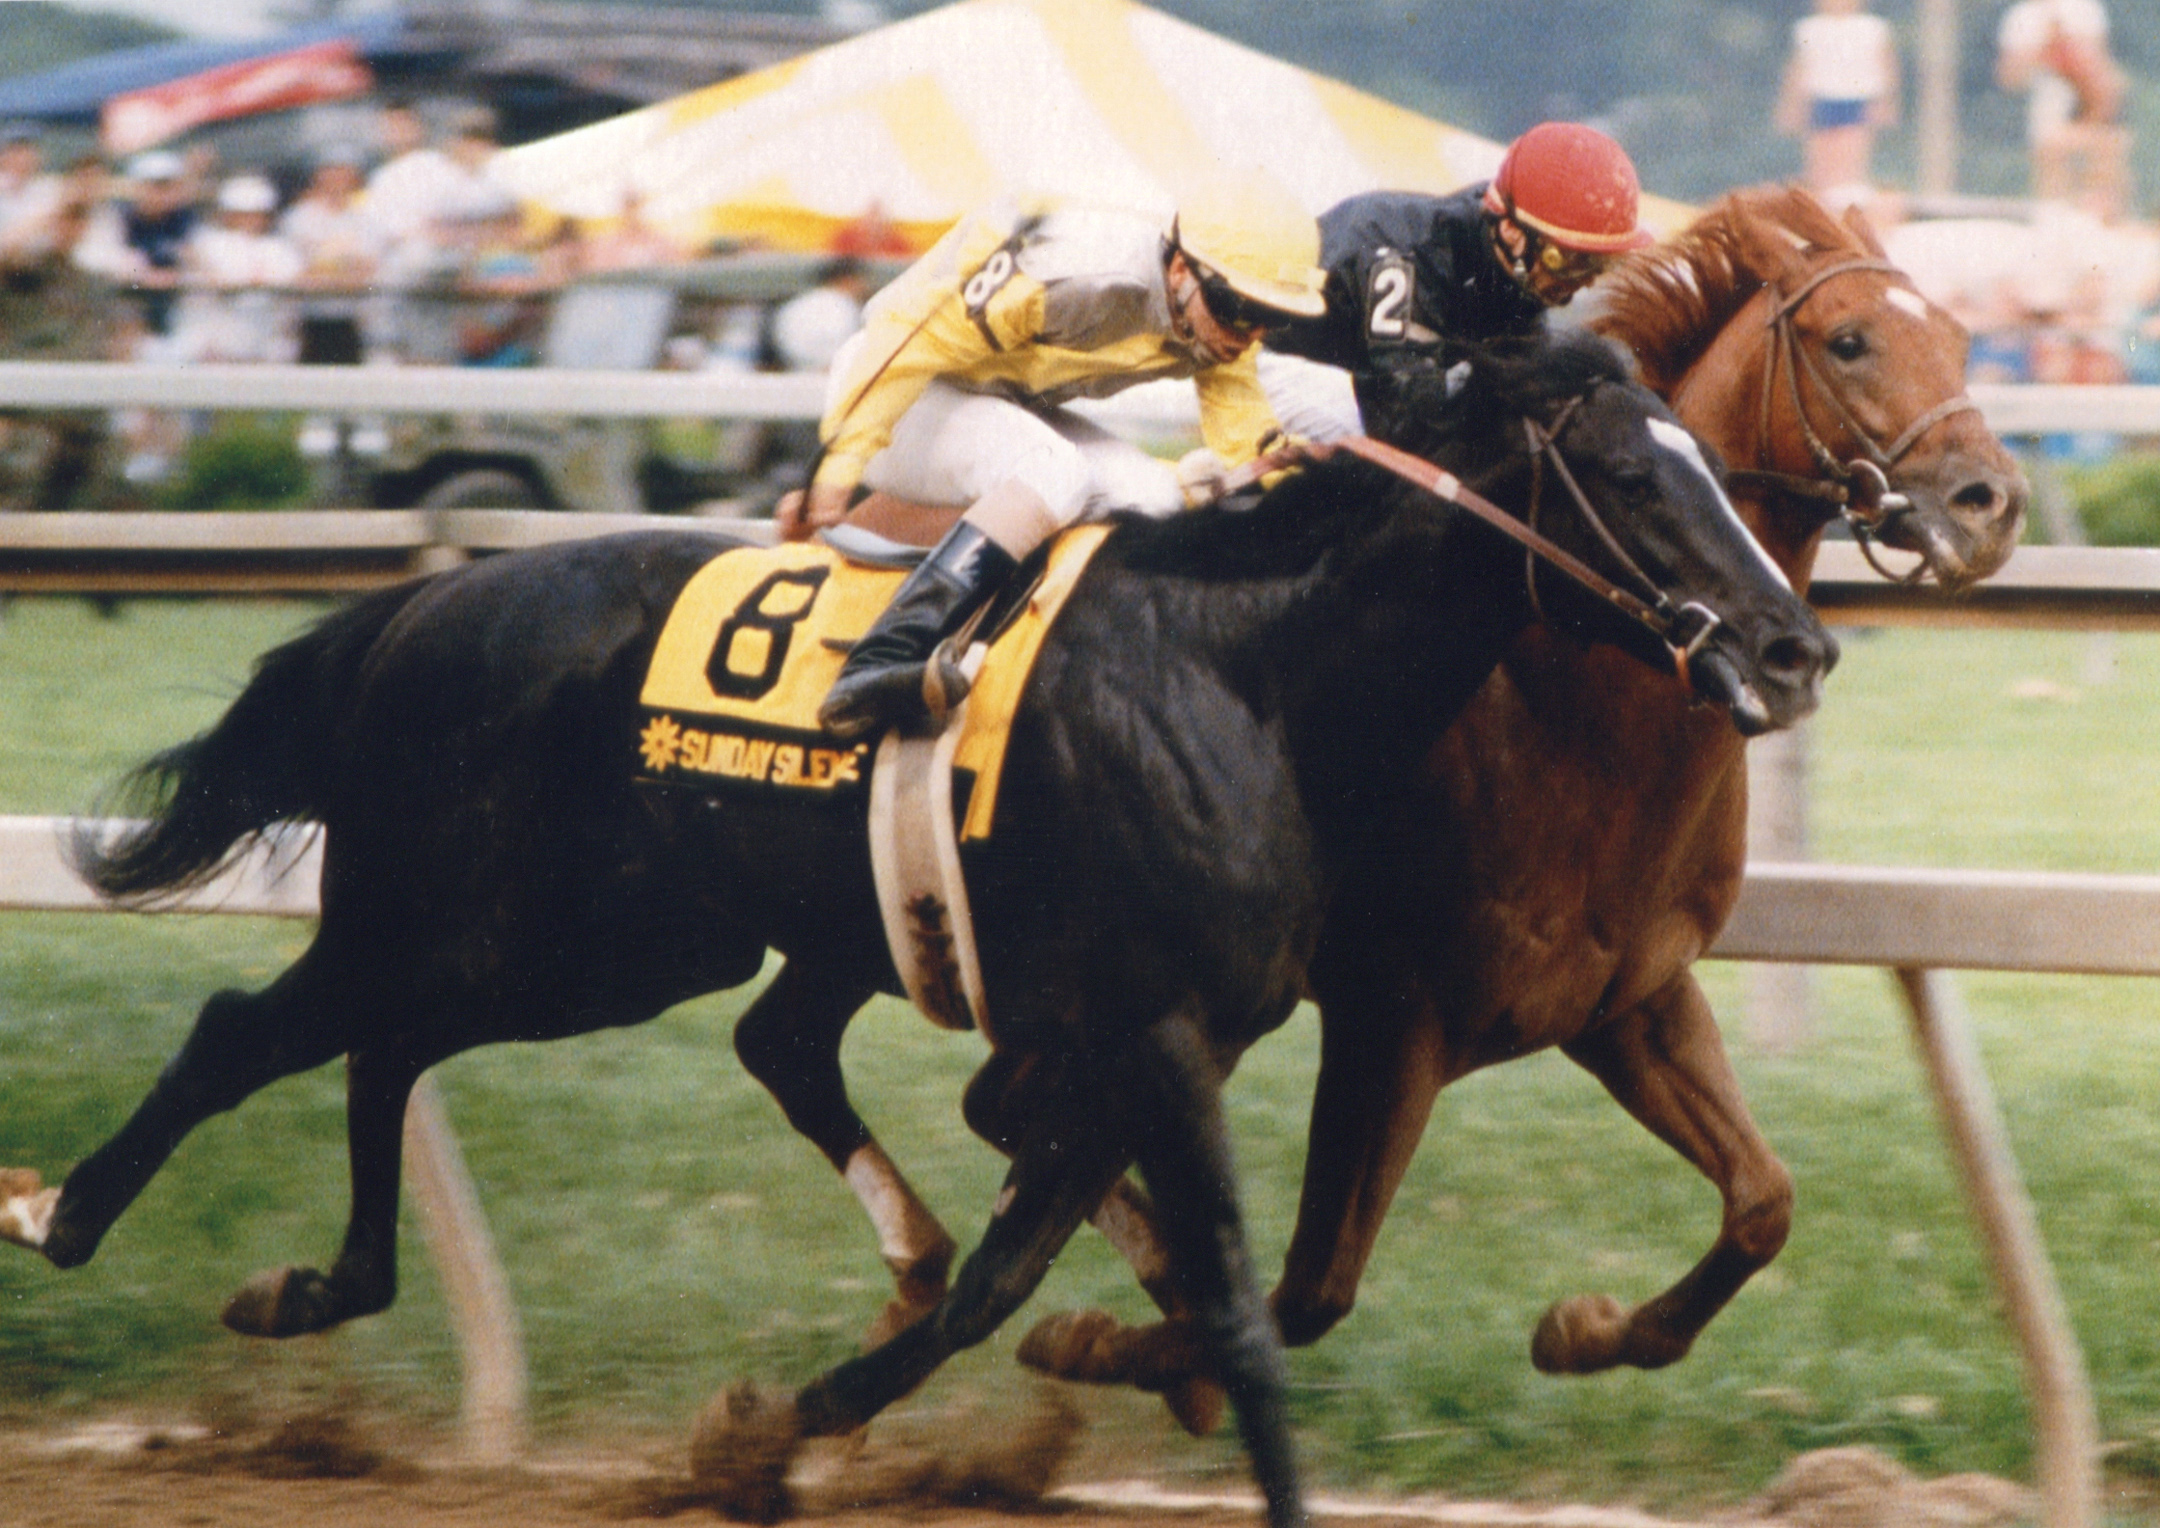 Sunday Silence (Patrick Valenzuela up) edges out fellow Hall of Famer Easy Goer (Pat Day up) in the 1989 Preakness Stakes (Mike Pender/Museum Collection)